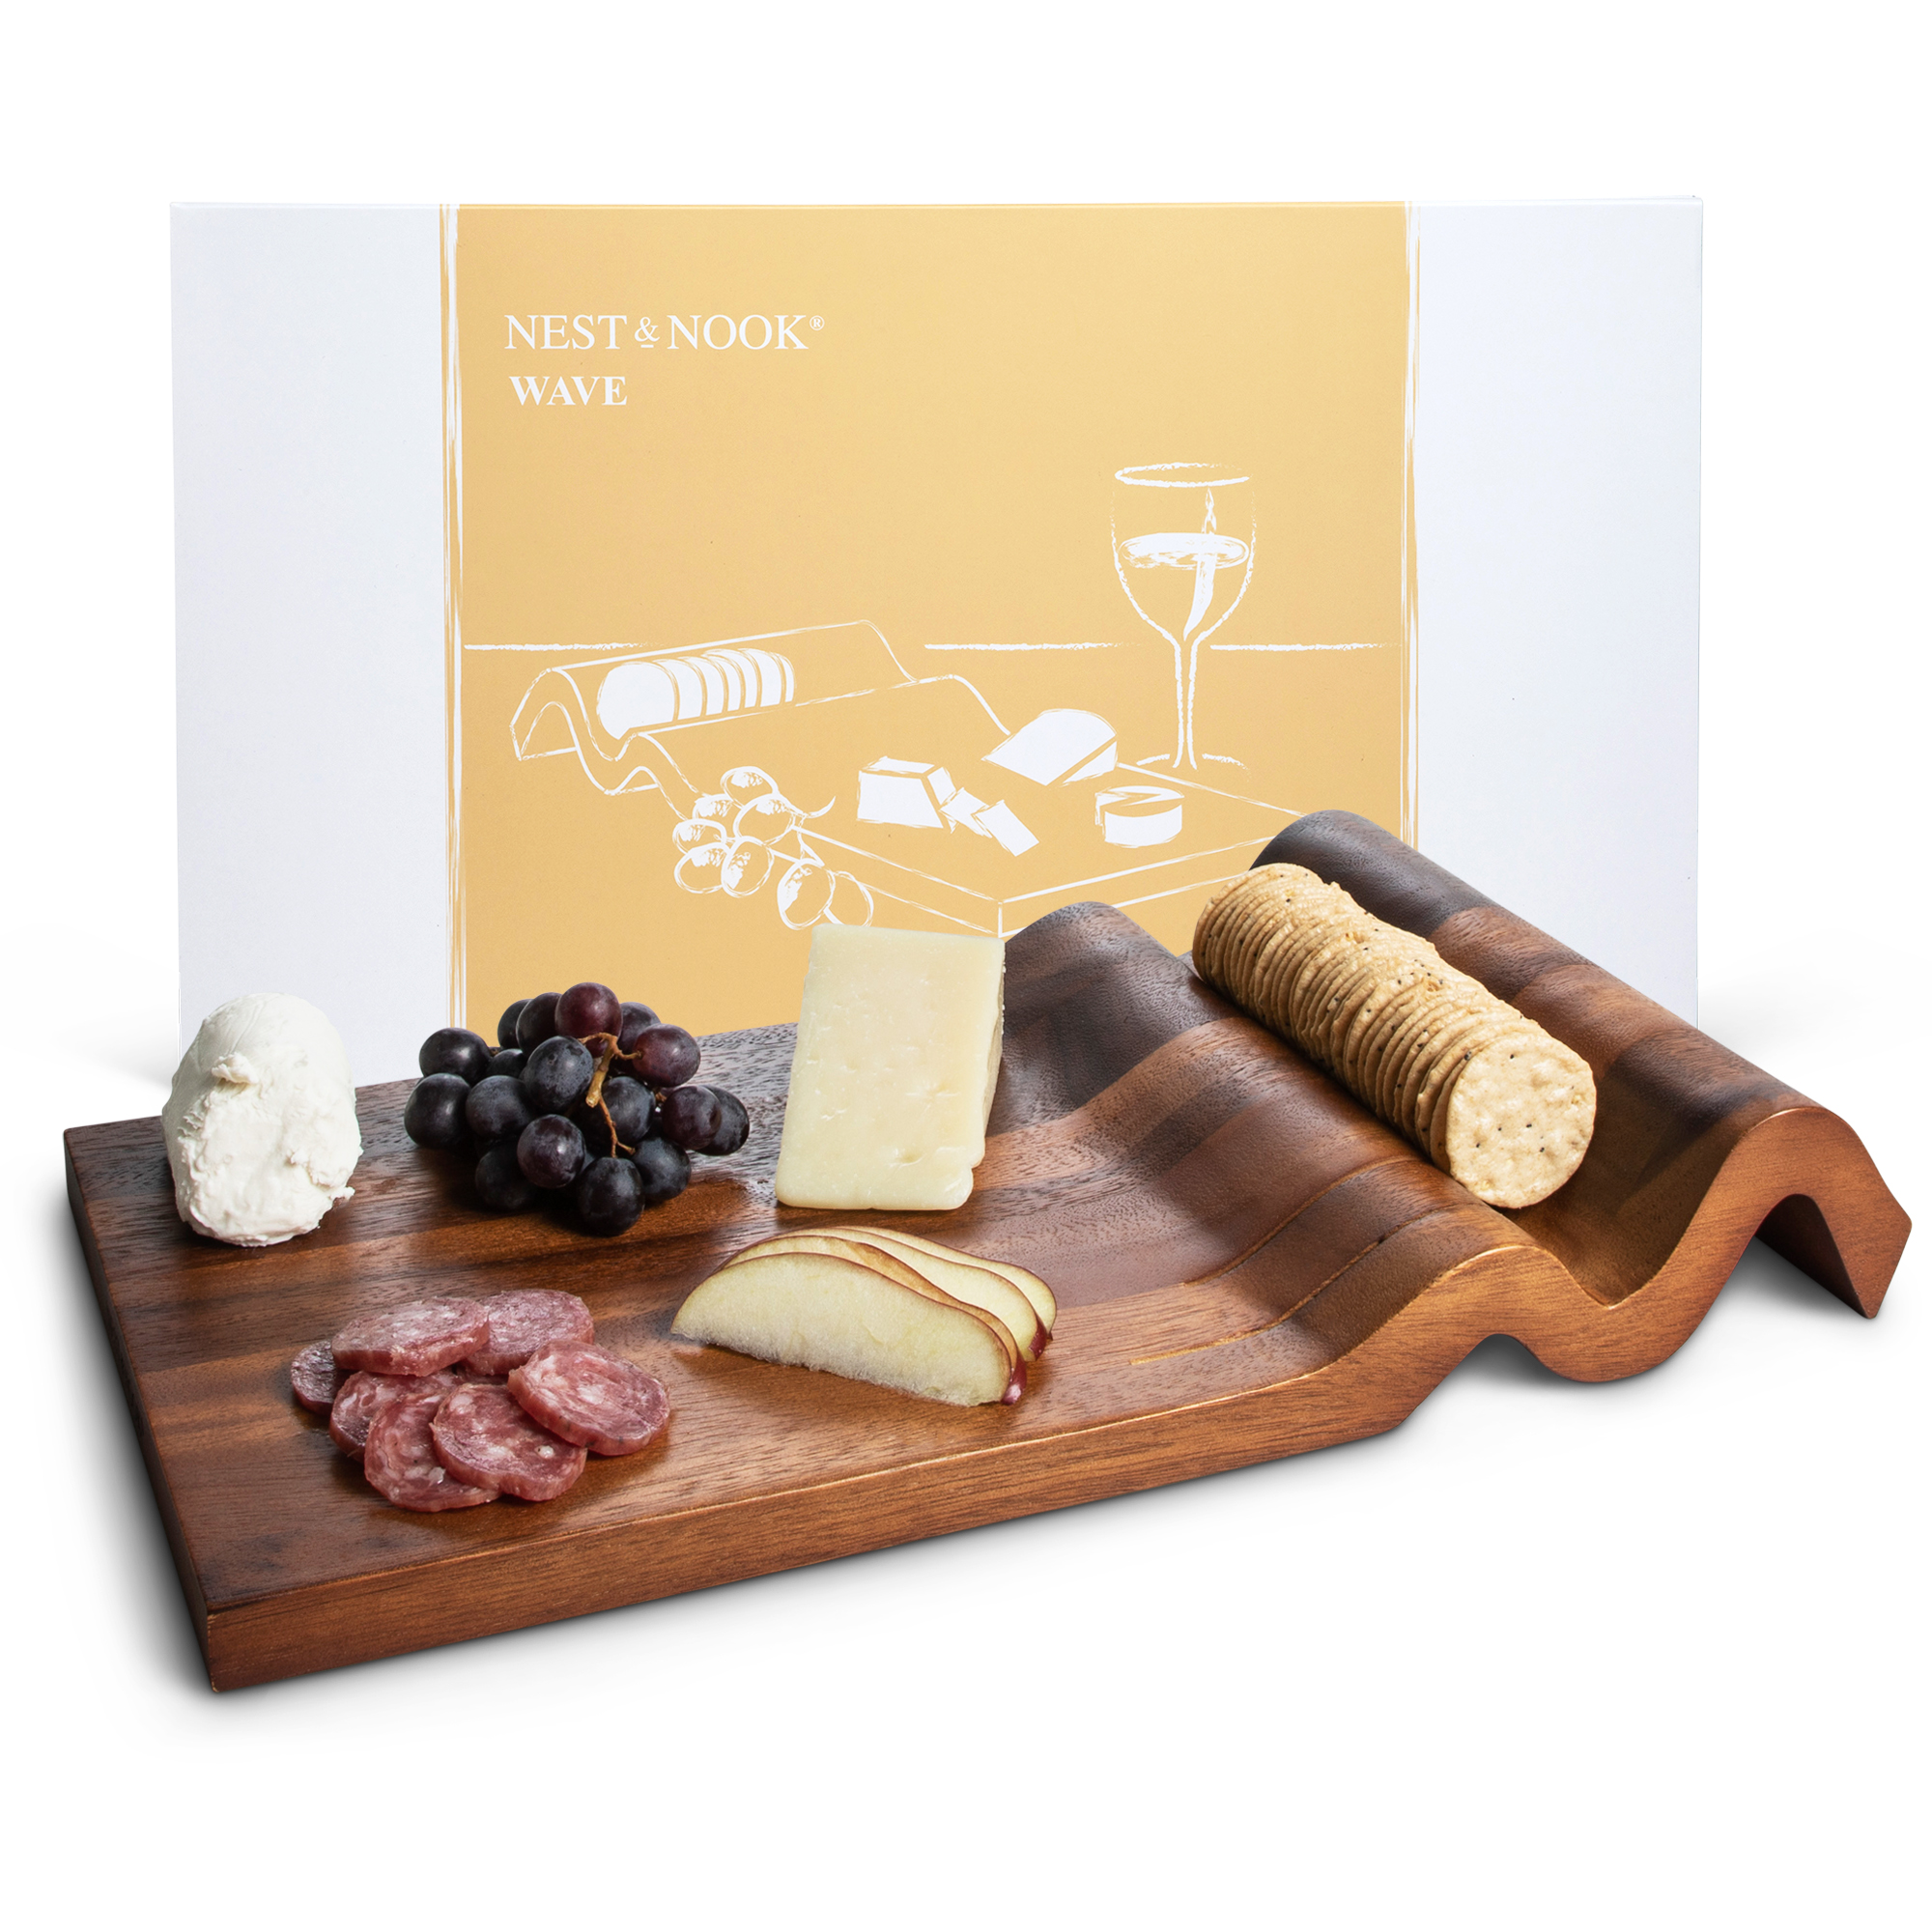 Wave <br>cheese board <br>(out of stock)